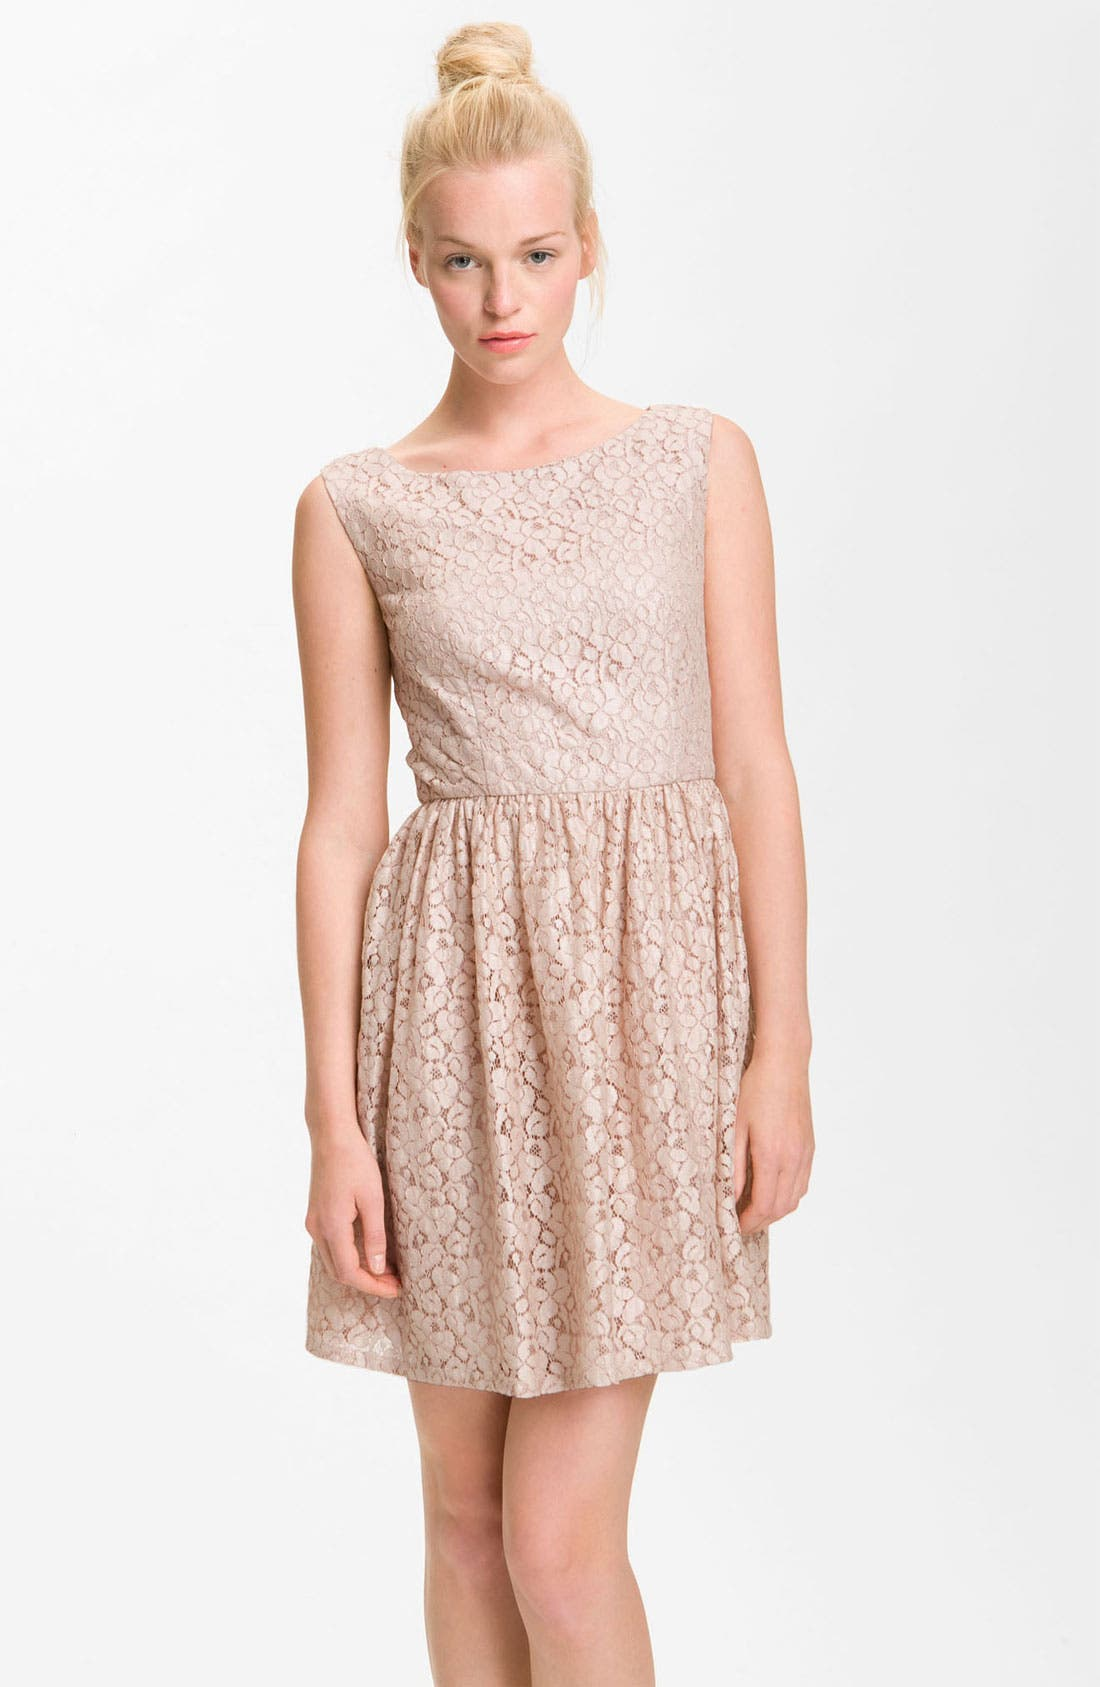 Alternate Image 1 Selected - French Connection 'Fast Twinkle' Metallic Lace Dress